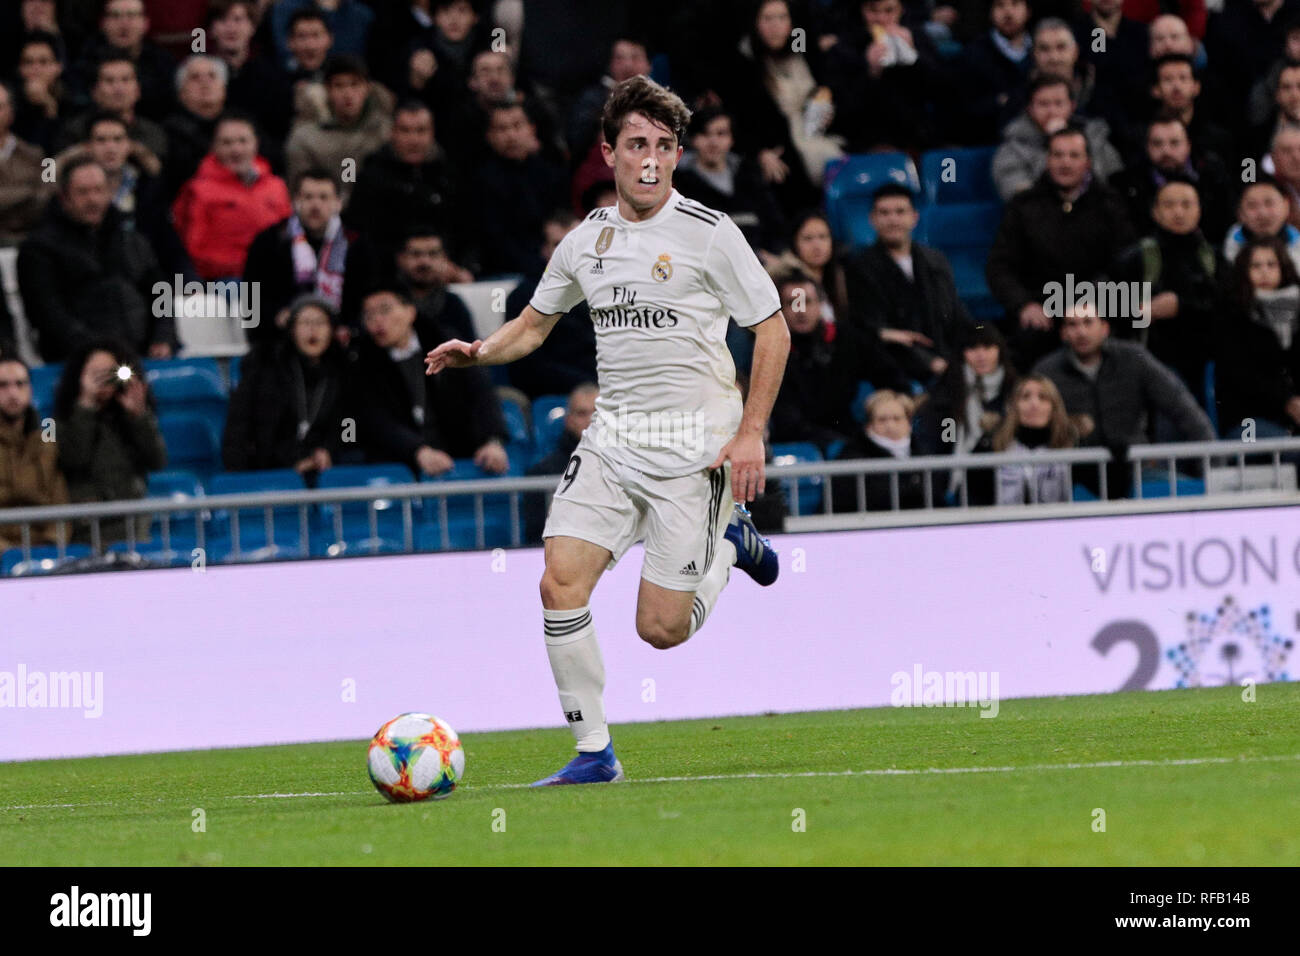 Real Madrid's Alvaro Odriozola during Copa del Rey match between Real Madrid and Girona FC at Santiago Bernabeu Stadium. (Final score: Real Madrid 4 - Girona FC 2) - Stock Image